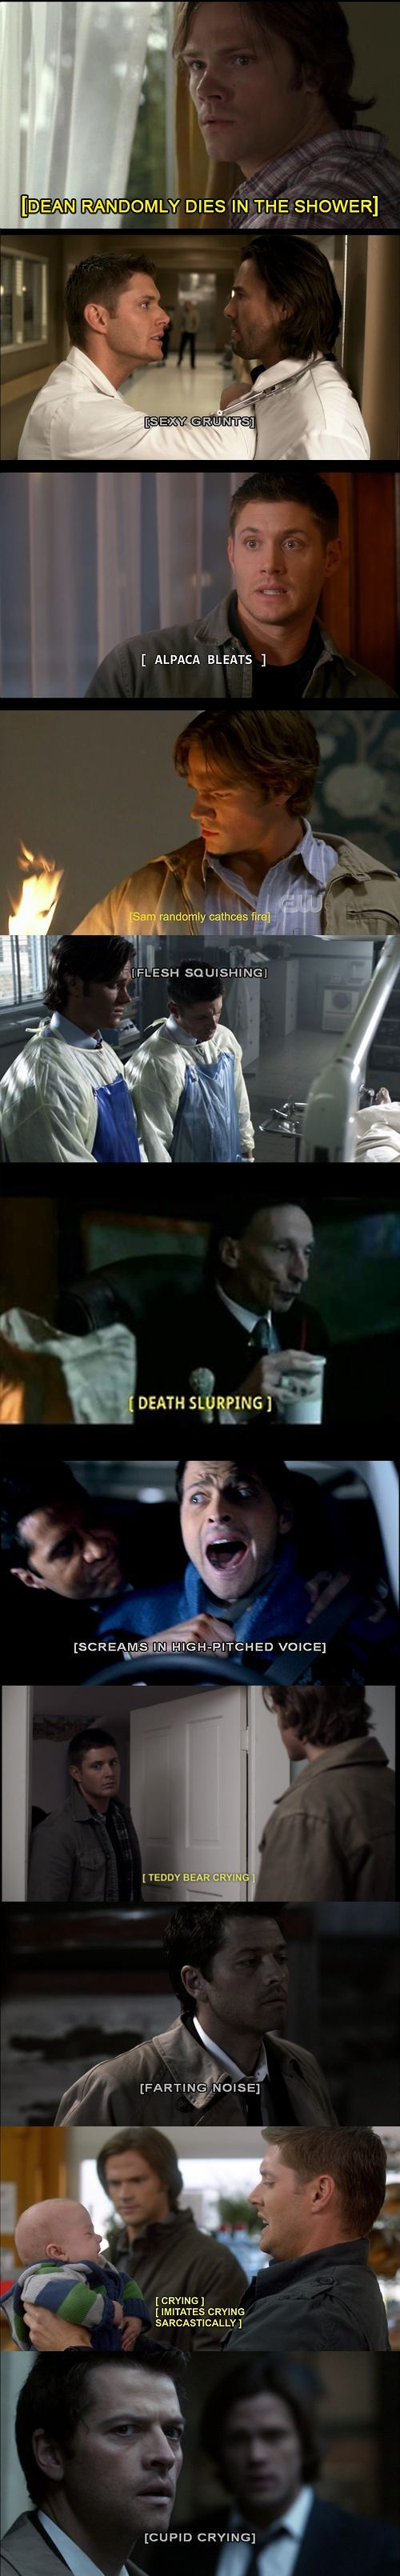 Real Supernatural closed captions. The people who caption SPN must also be fans… (not my caption):